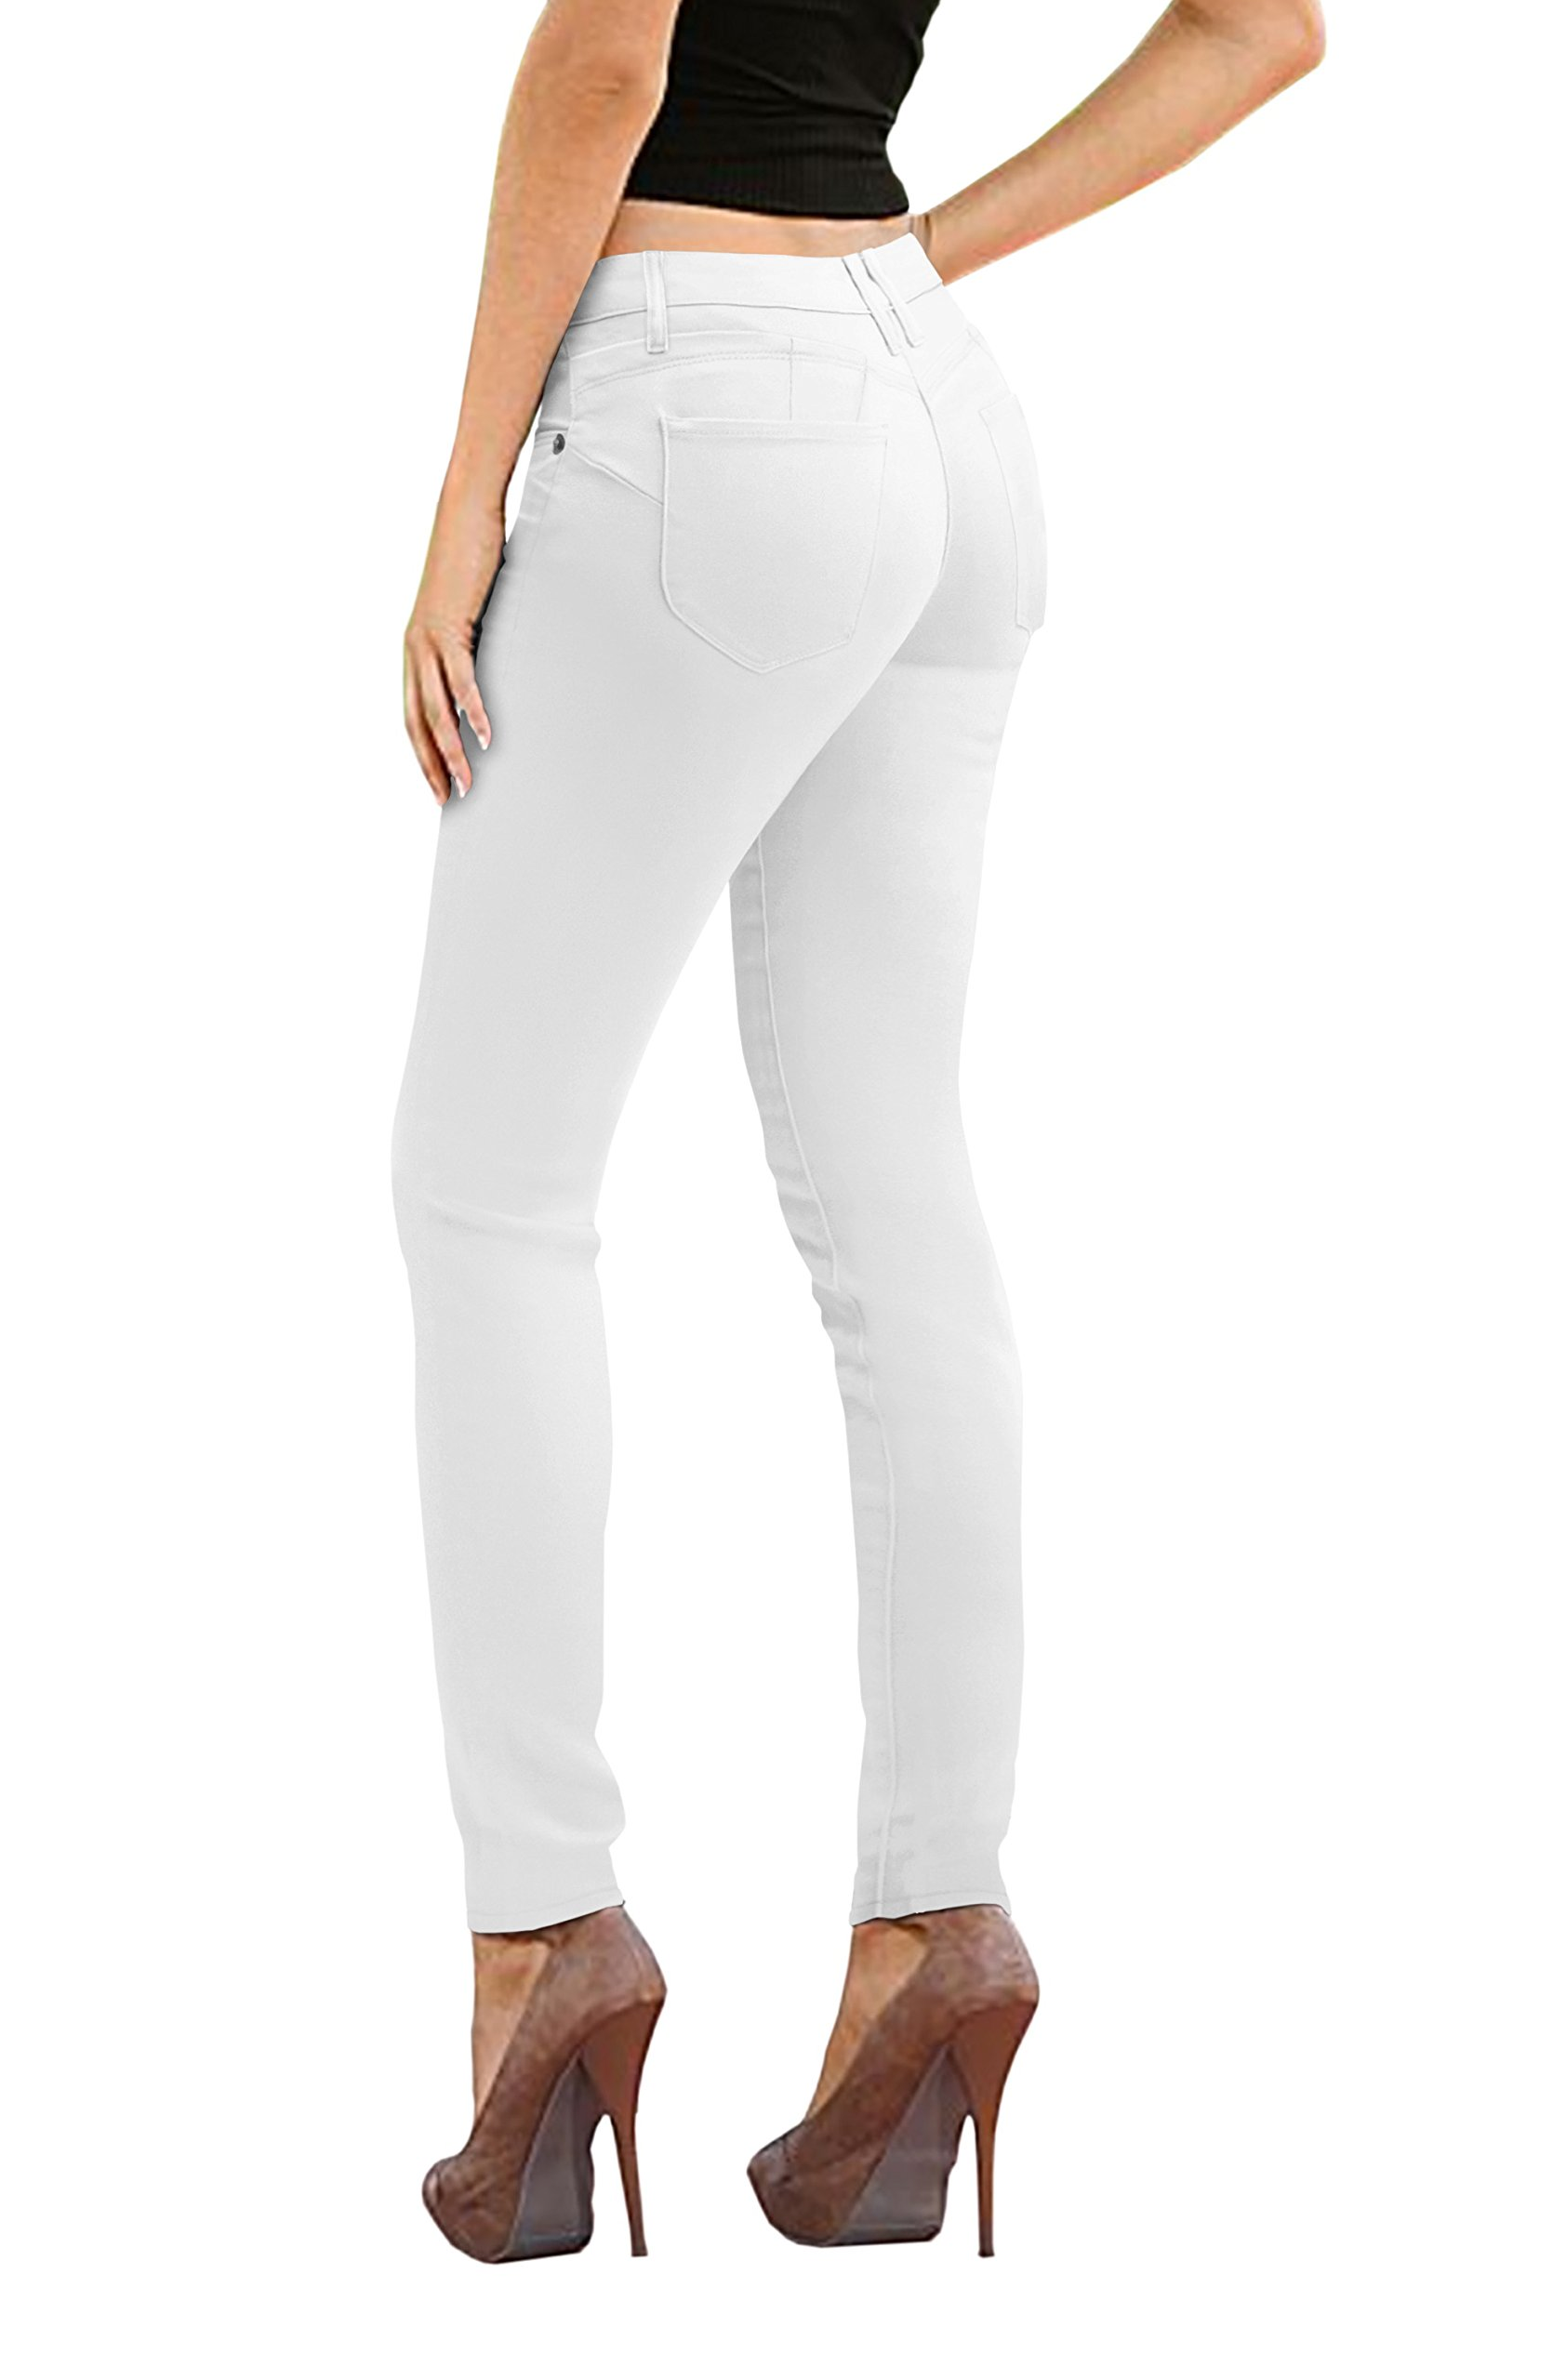 HyBrid & Company Women's Butt Lift Stretch Denim Jeans-P37378SKX-White-16